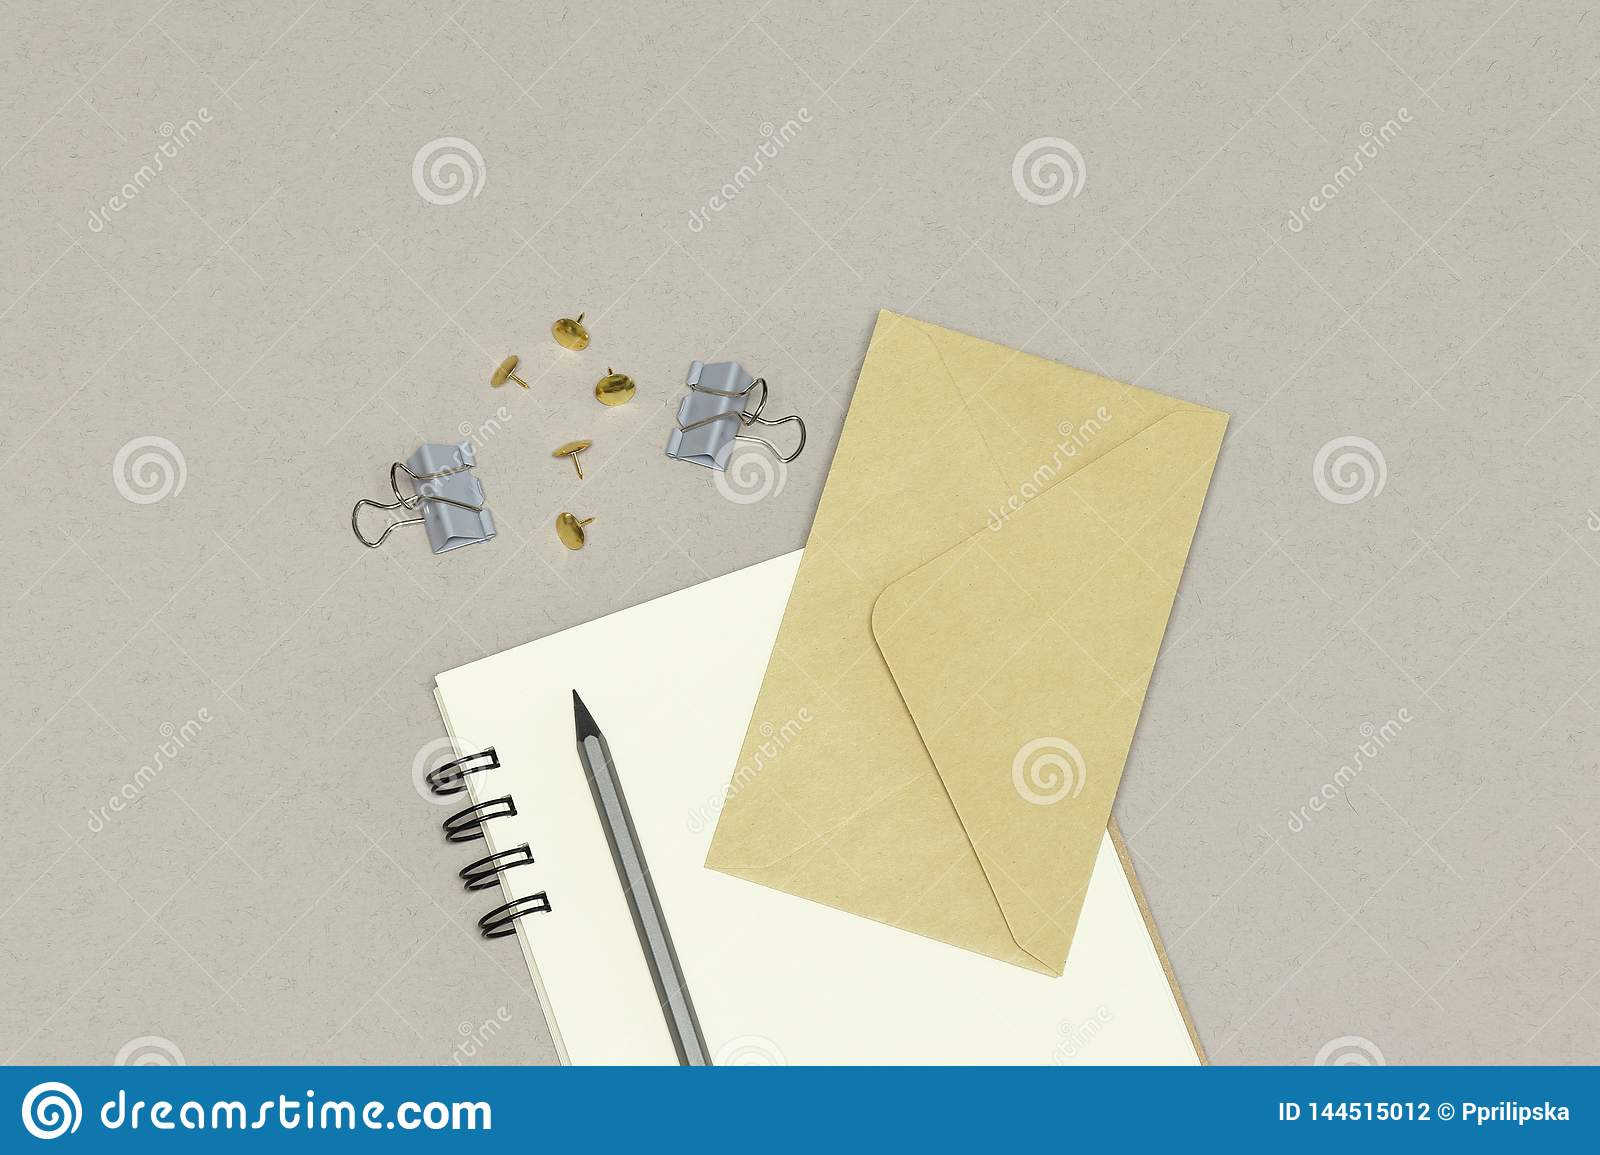 How To Make An Envelope Without Glue Or Tape (HD) - YouTube   1155x1600